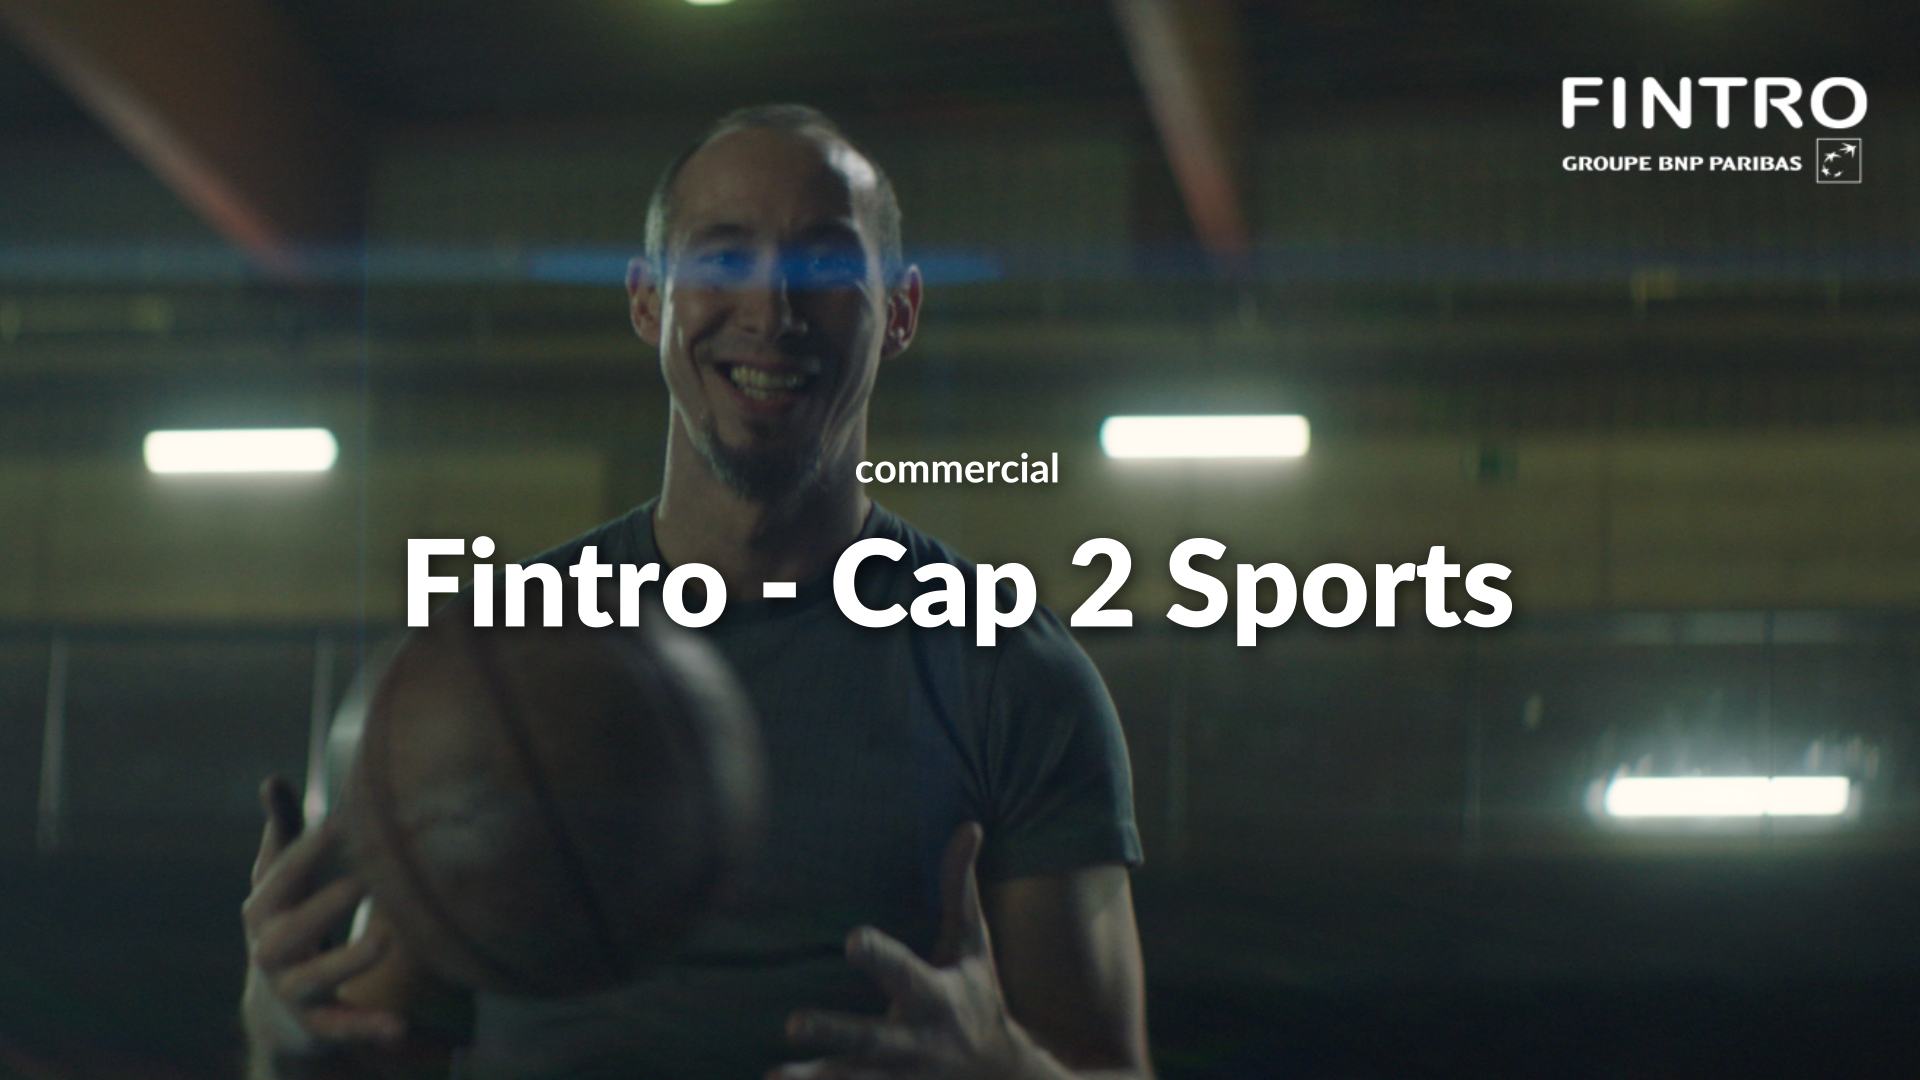 Fintro-Awareness-10s-Cap2Sports-FR_00000.png